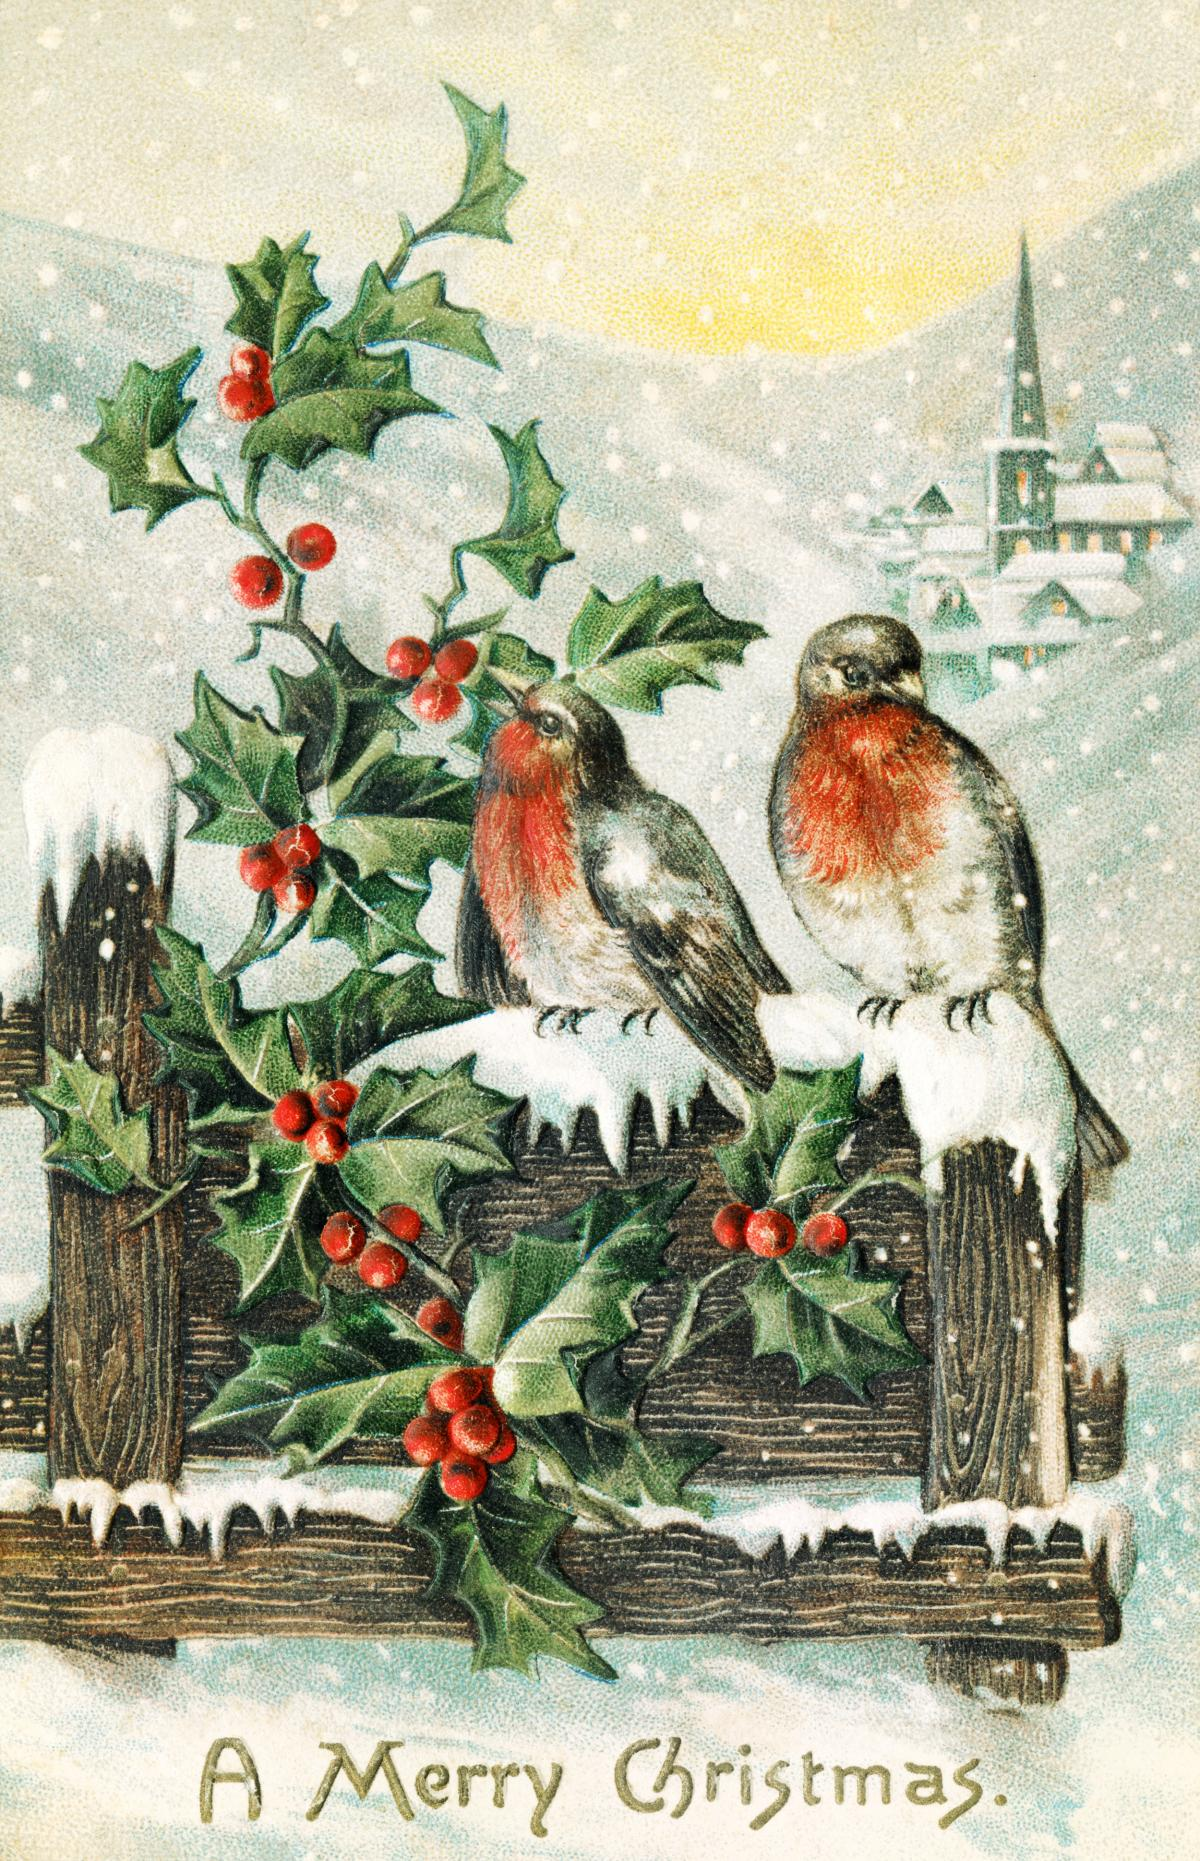 Vintage Christmas Postcard (1906) by P. Sander. Original from The New York Public Library.